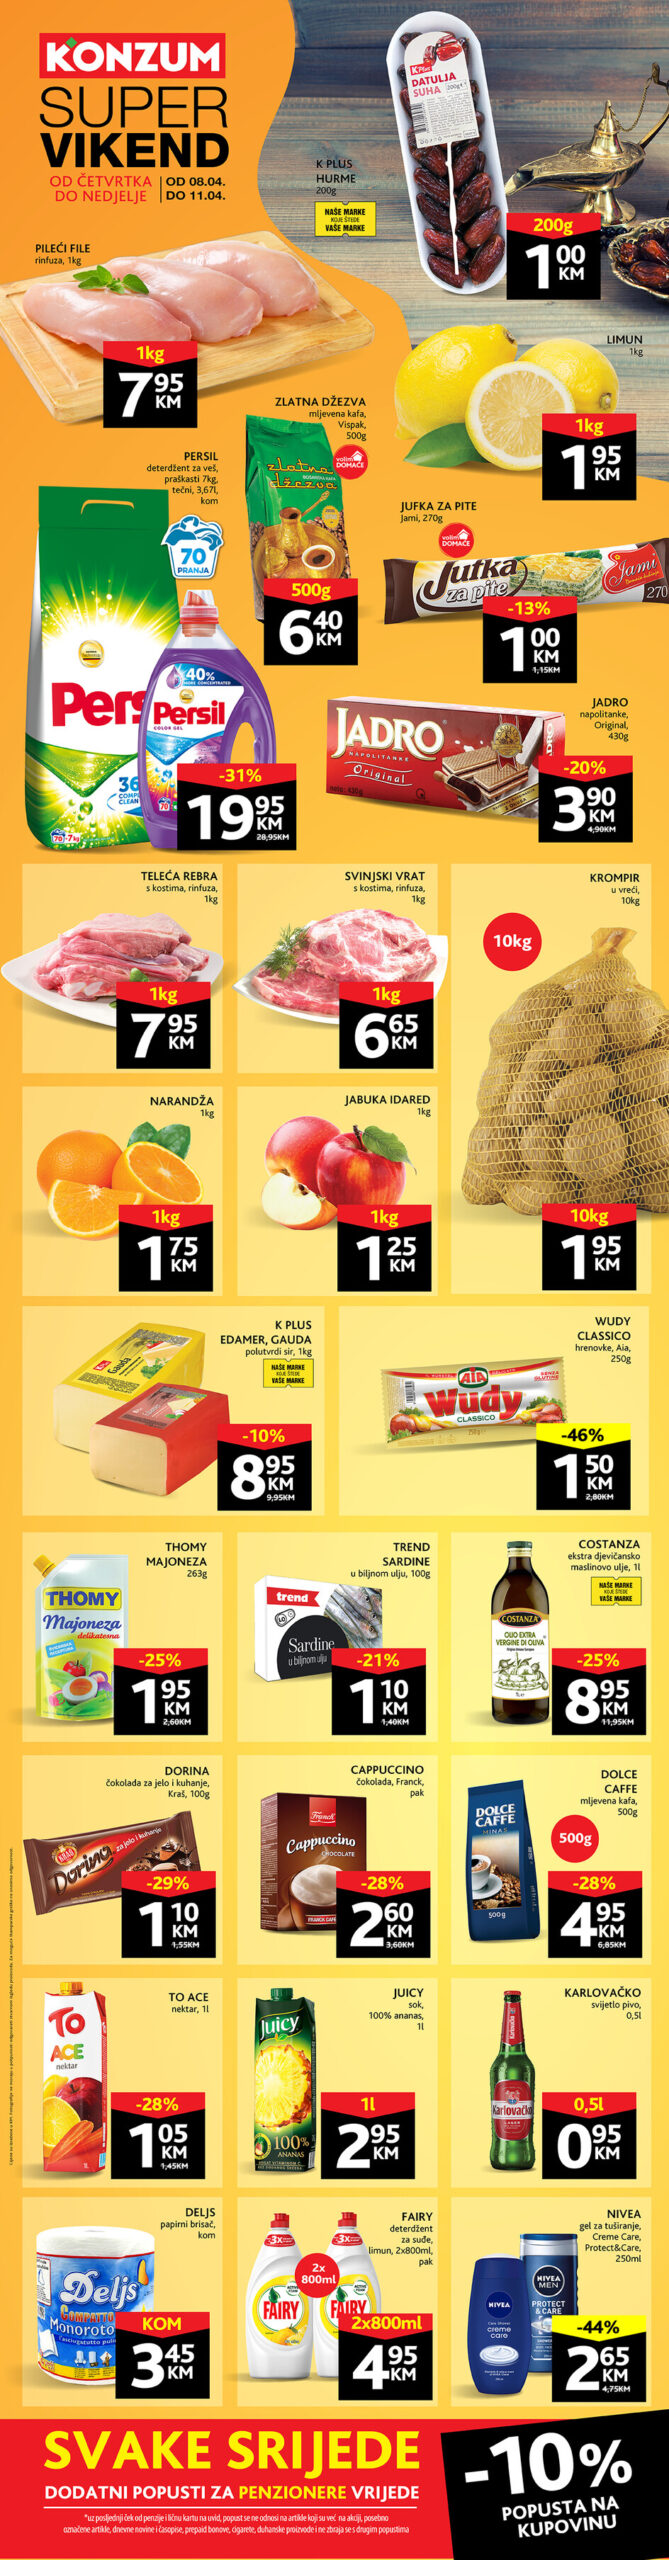 KONZUM Katalog Vikend akcija APRIL 2021 08.04.2021. 11.04.2021